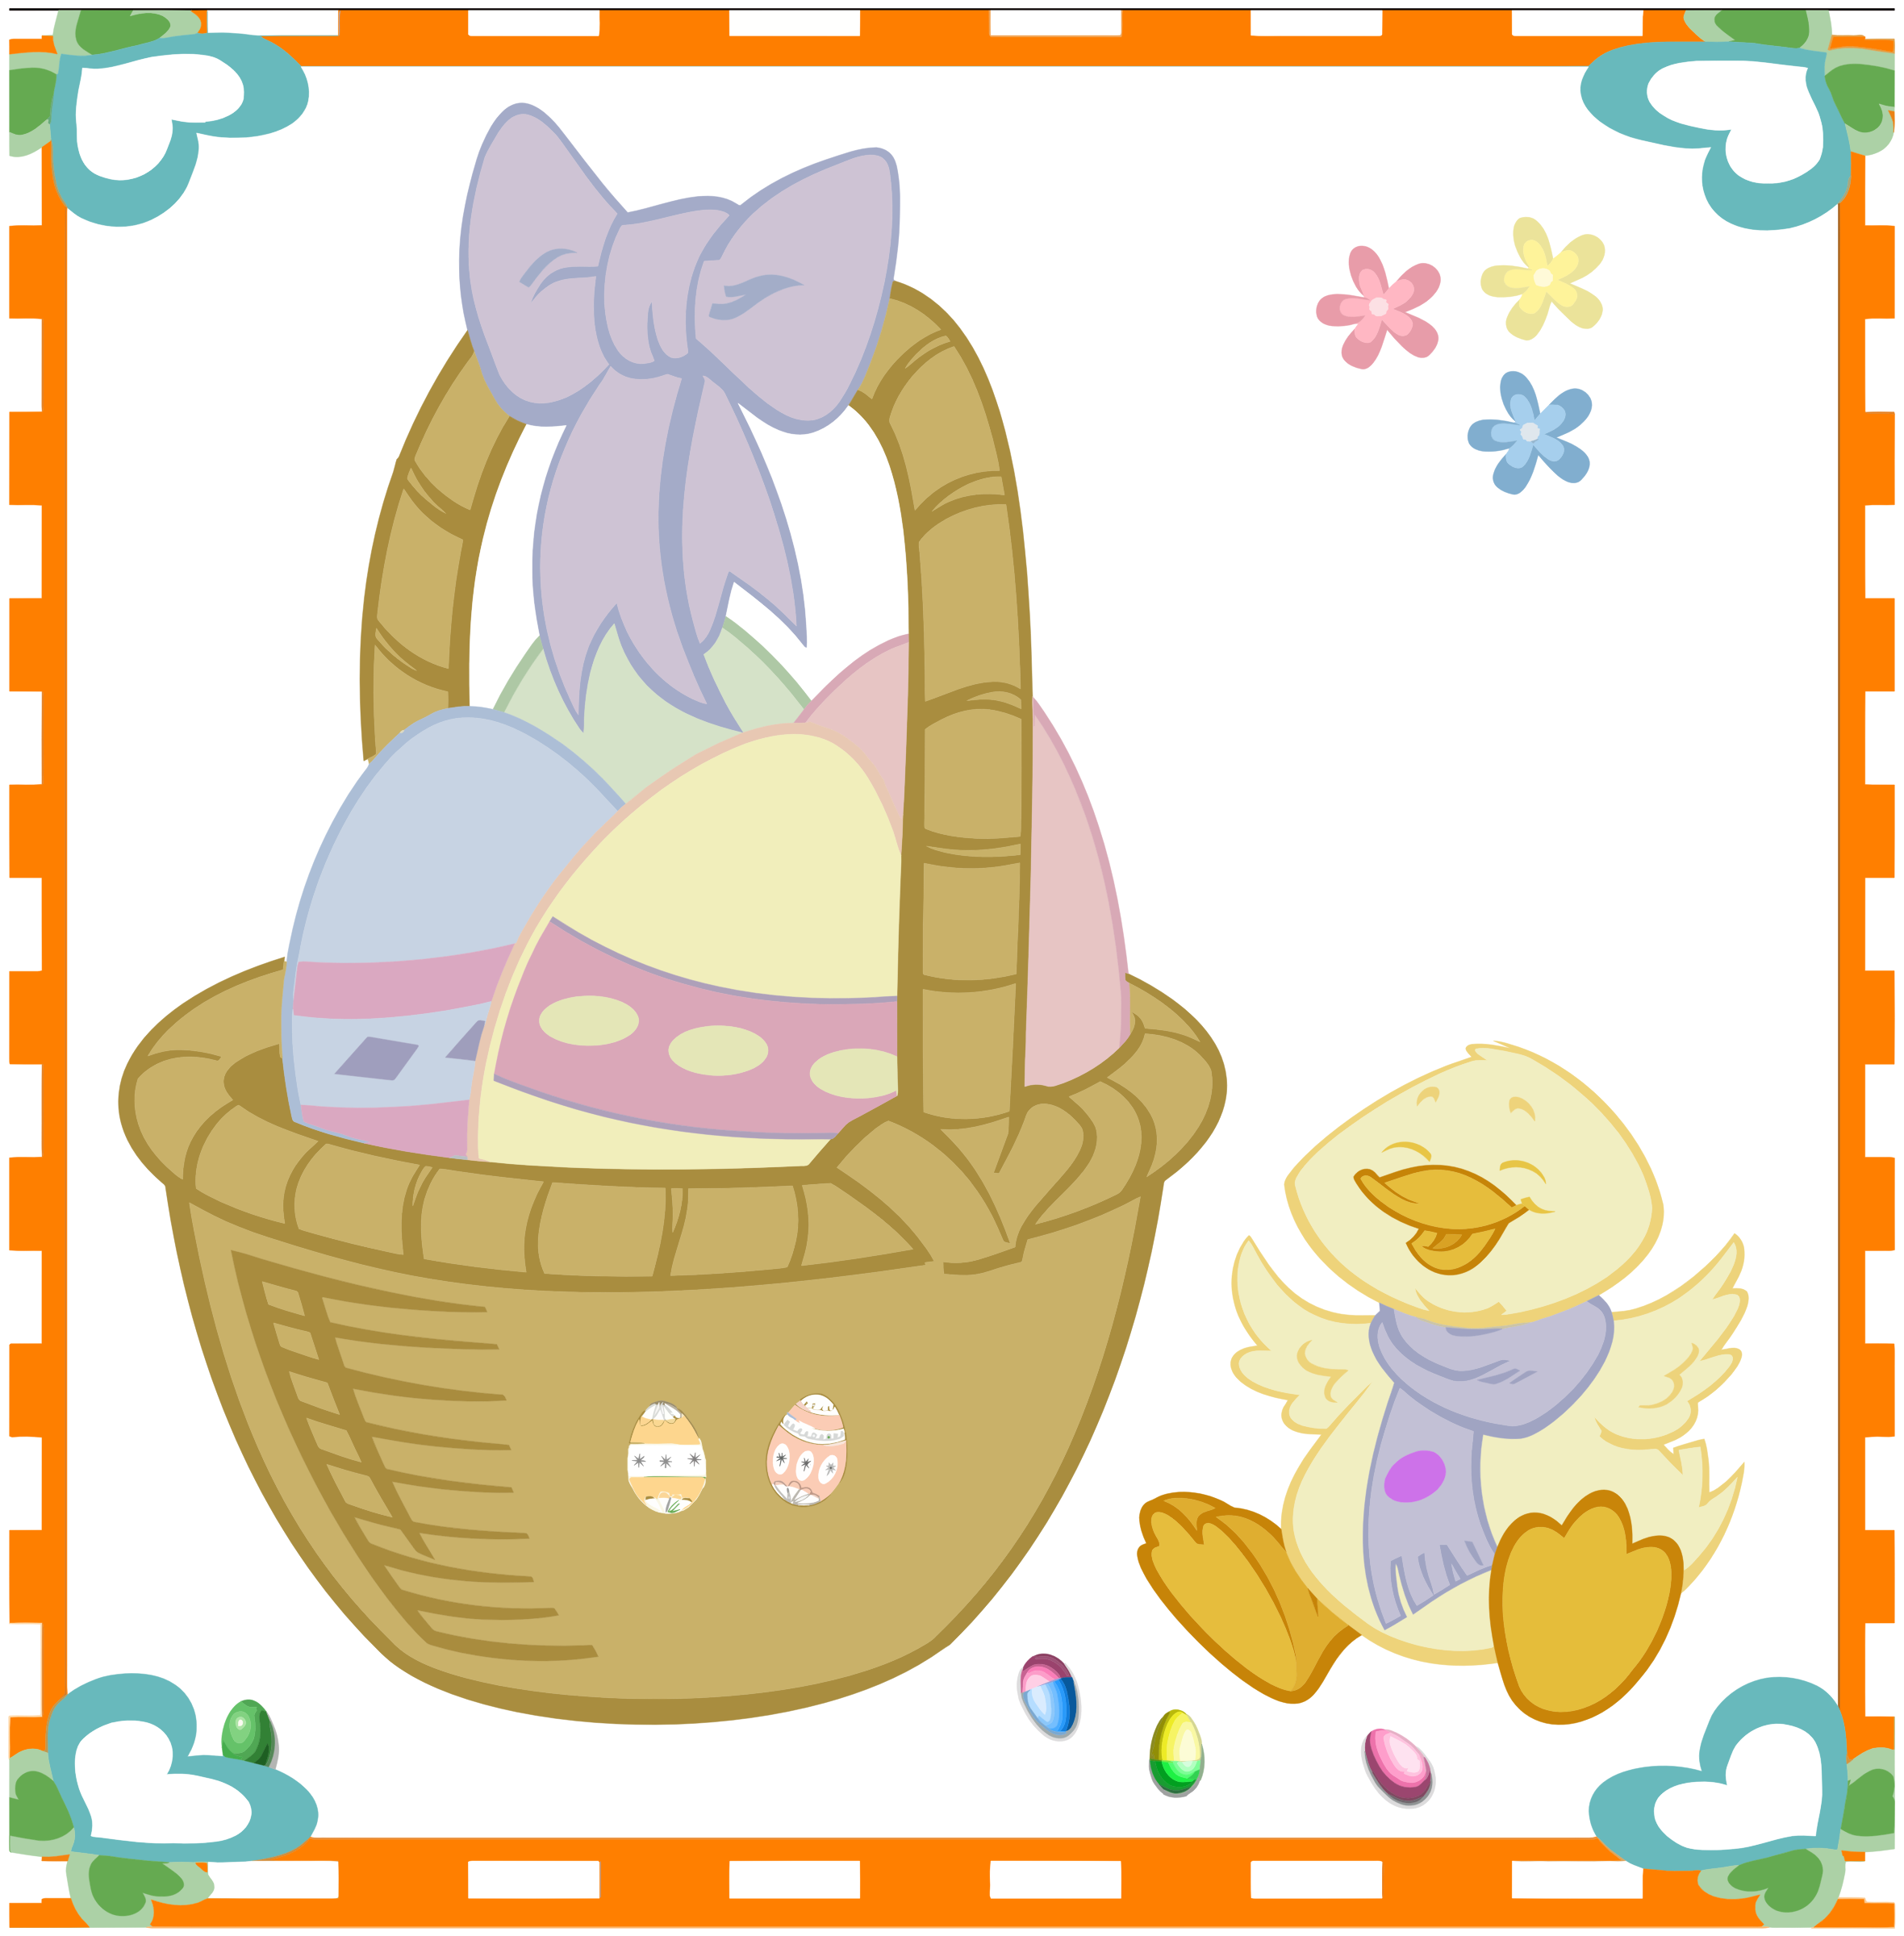 Easter Egg Basket And Duckling by GDJ